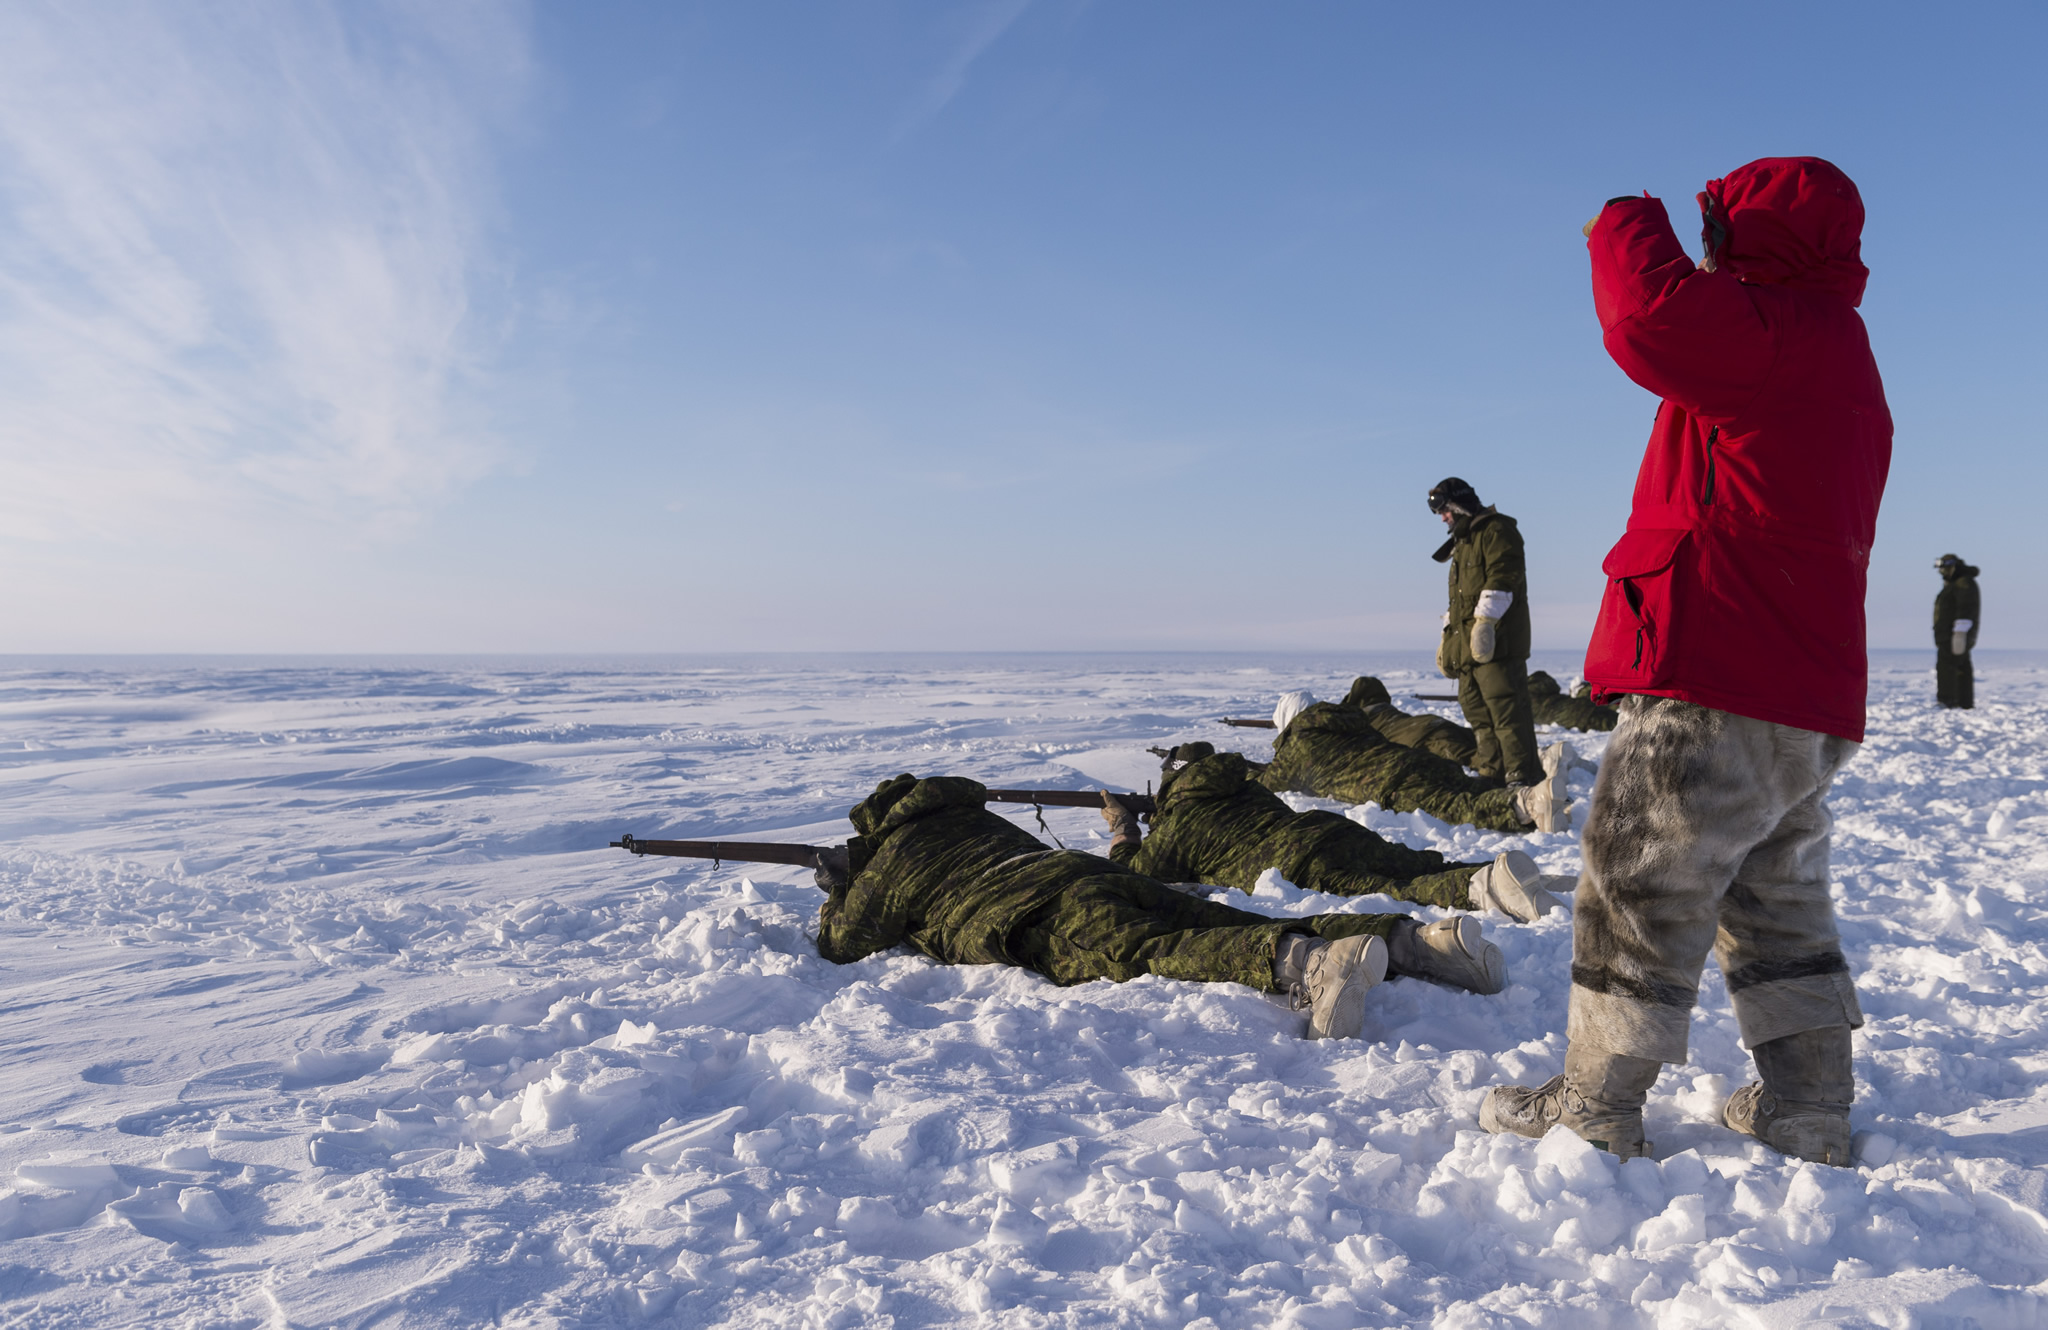 Deployed members of 12e Régiment blindé du Canada and Rangers from 1 Canadian Ranger Patrol Group participate in an austere rifle range during near Hall Beach, Nunavut. (Photo: Sgt Jean-François Lauzé)